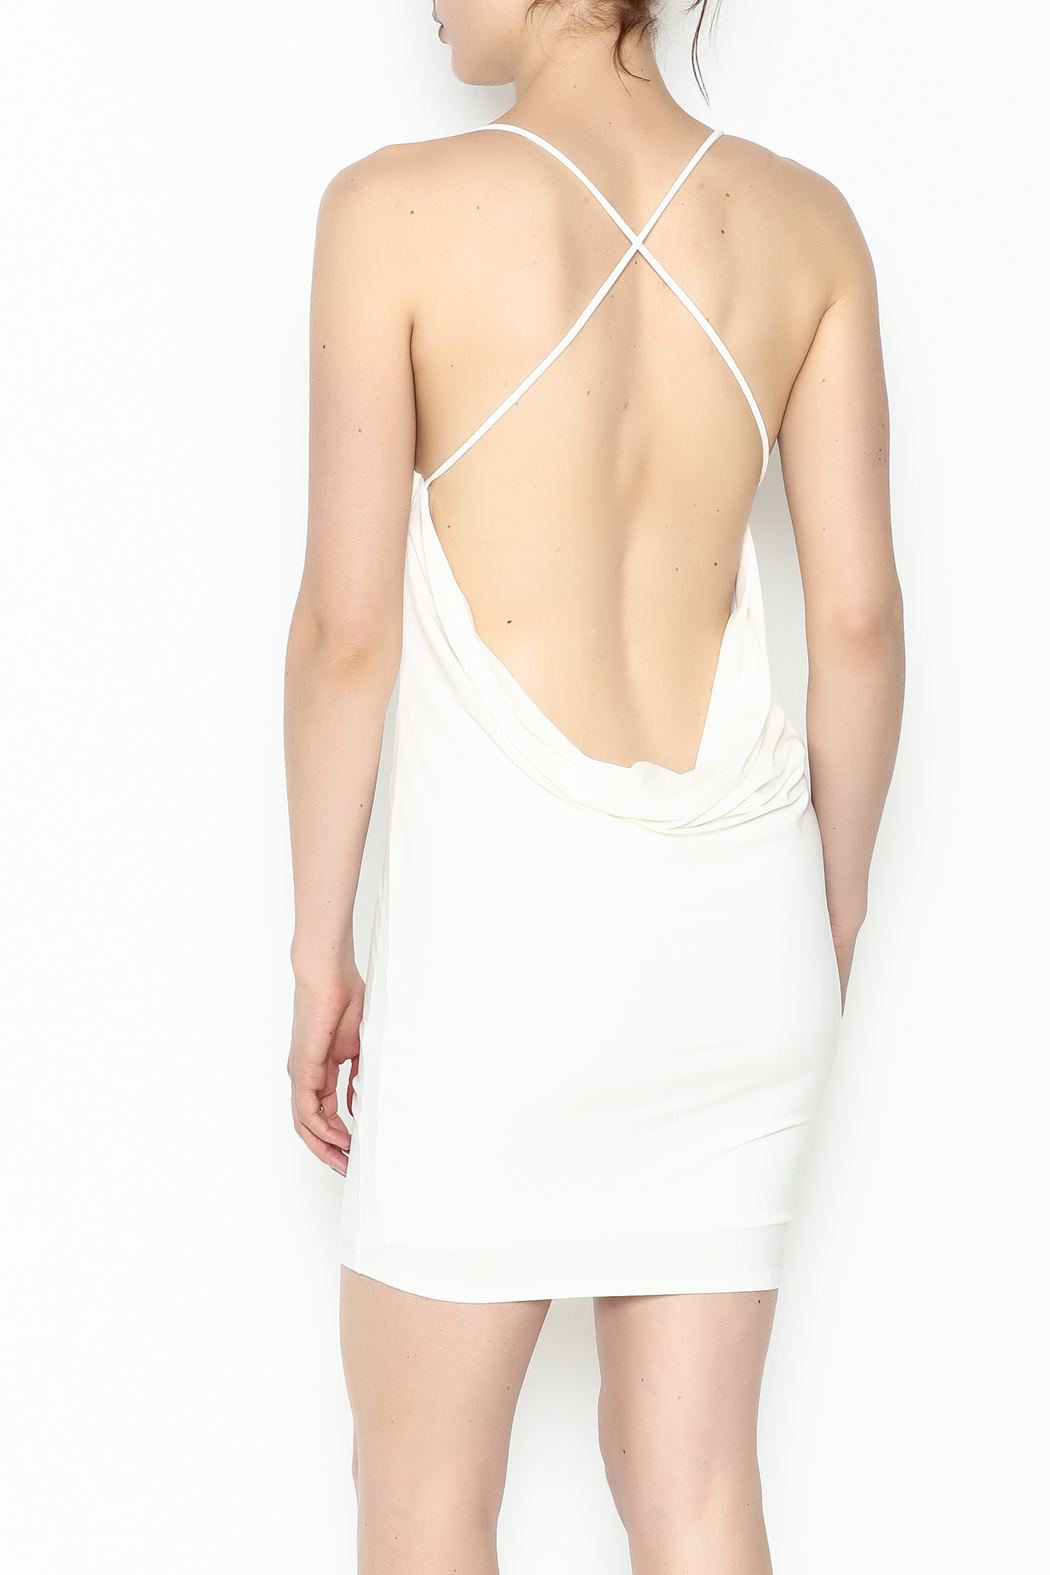 day and night Strappy Back Dress - Back Cropped Image